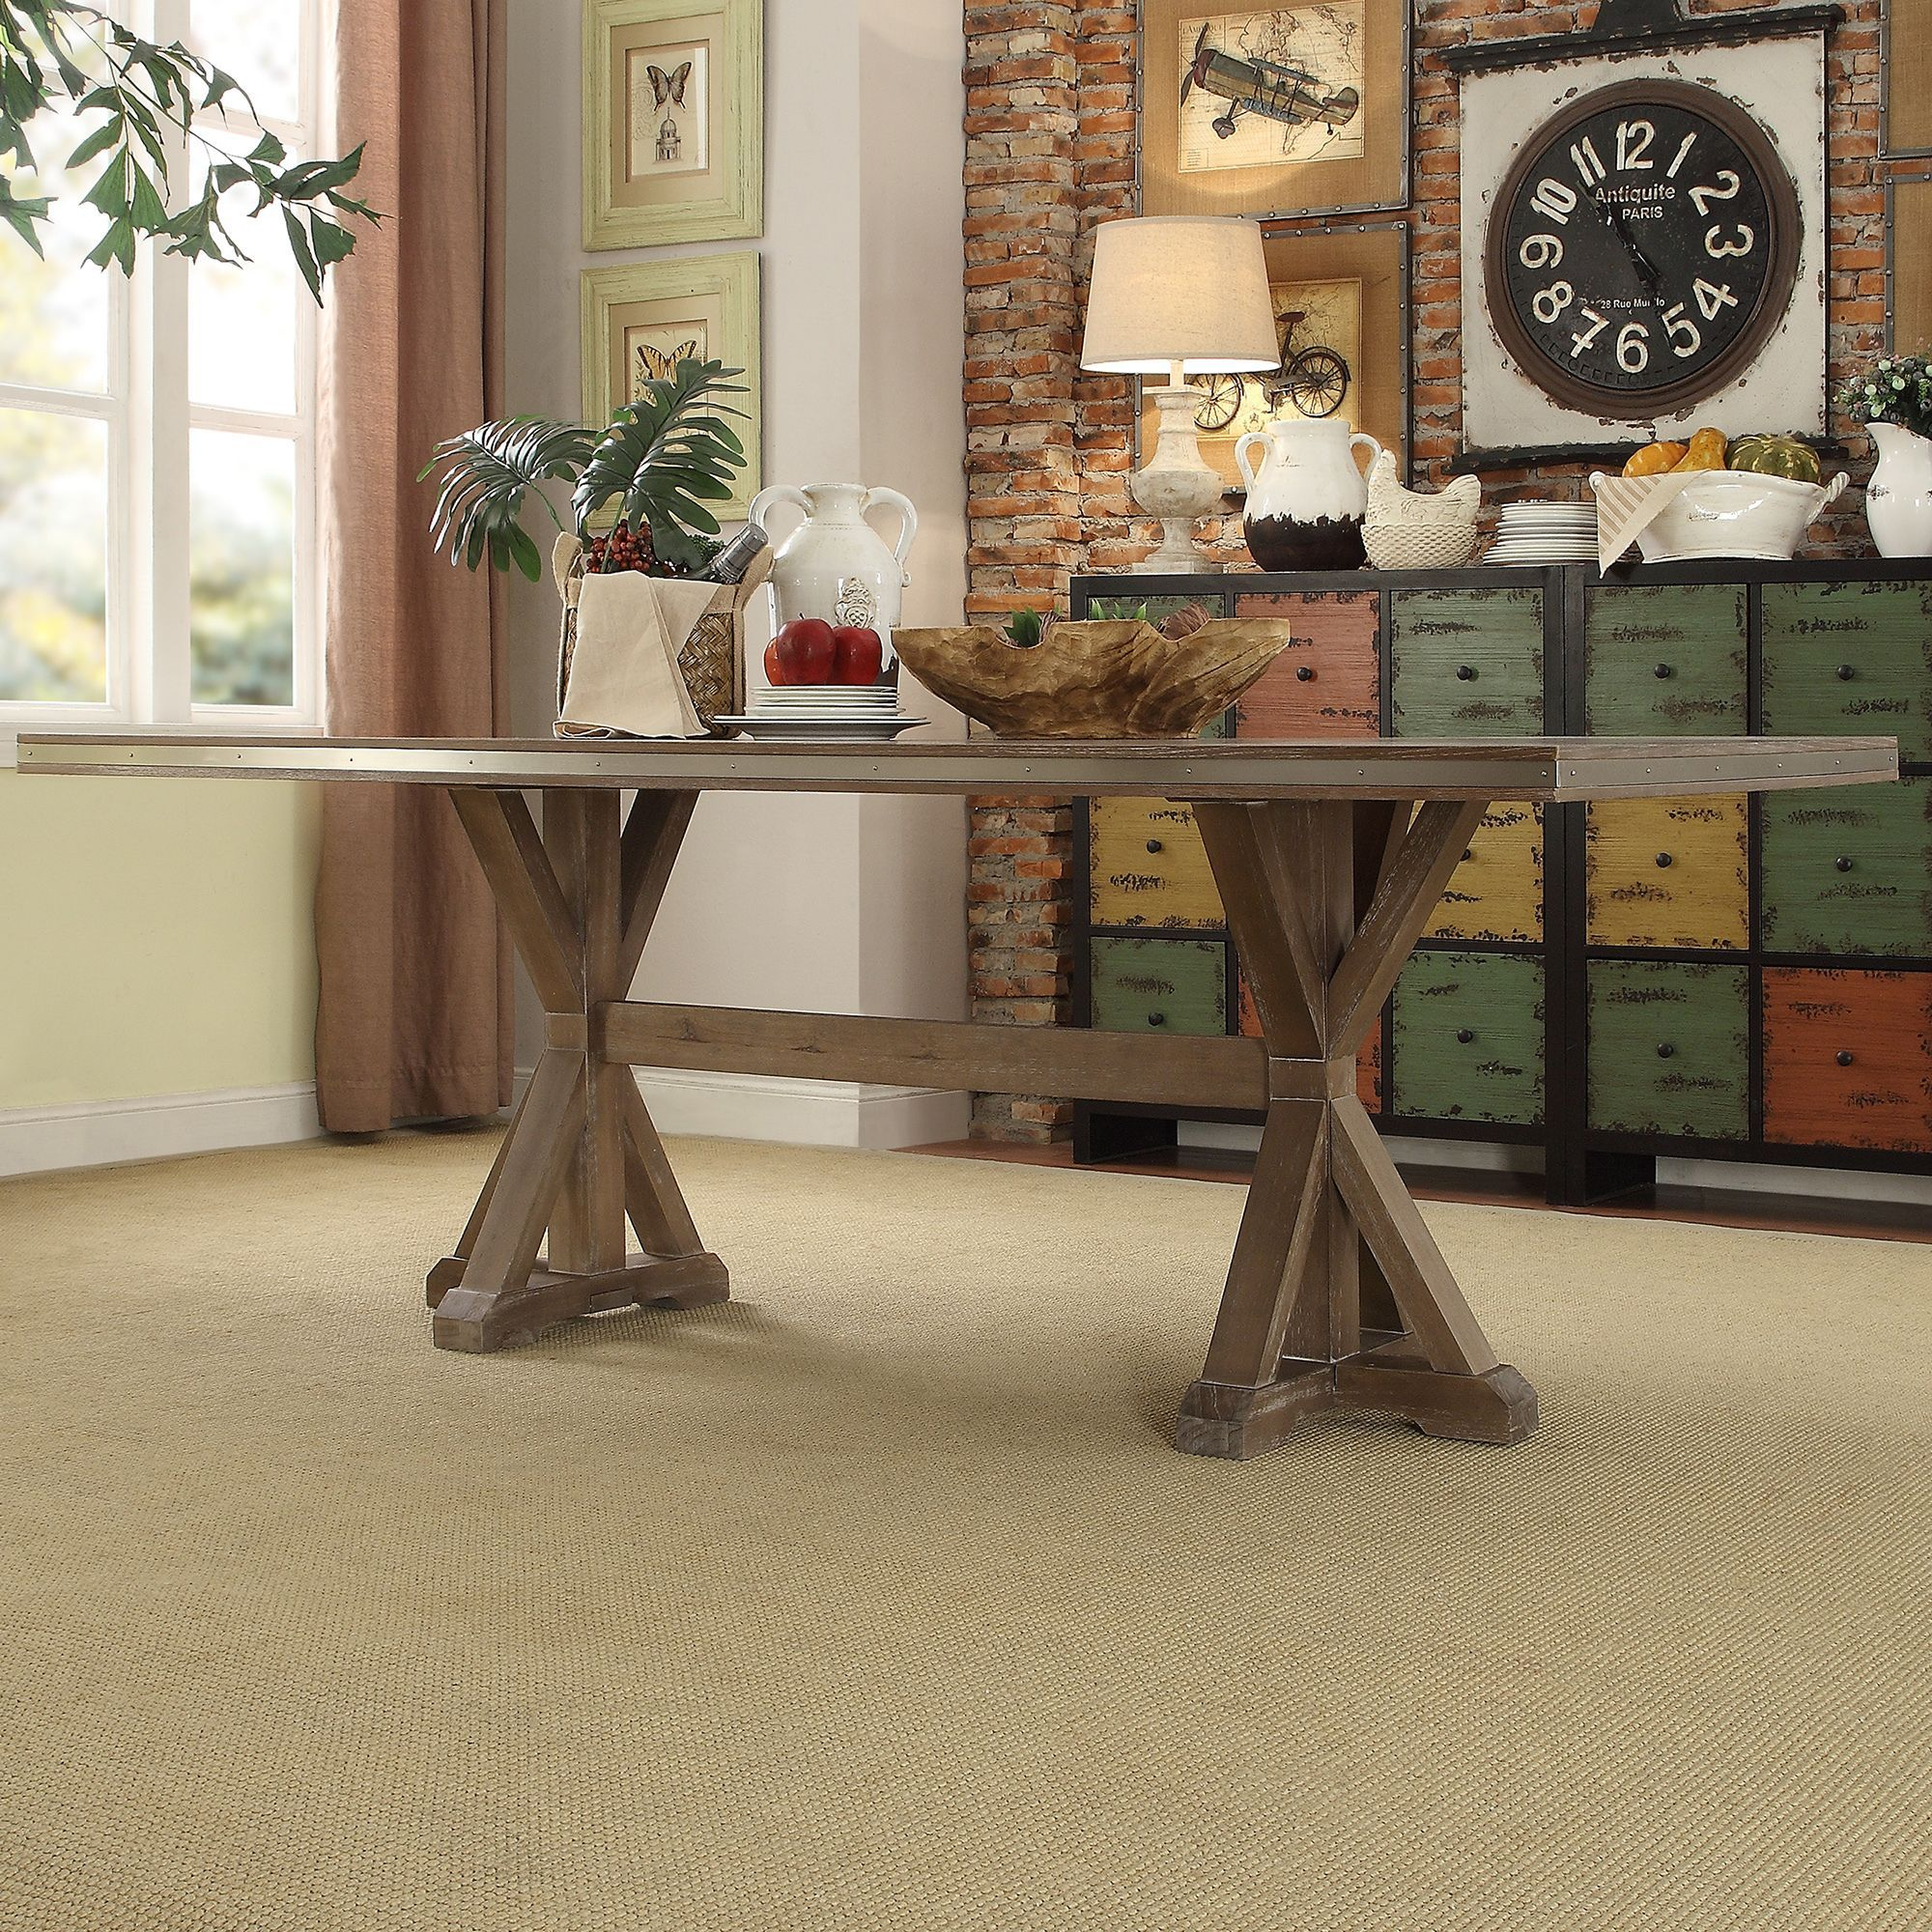 Kitchen u0026 Dining Room Tables For Less